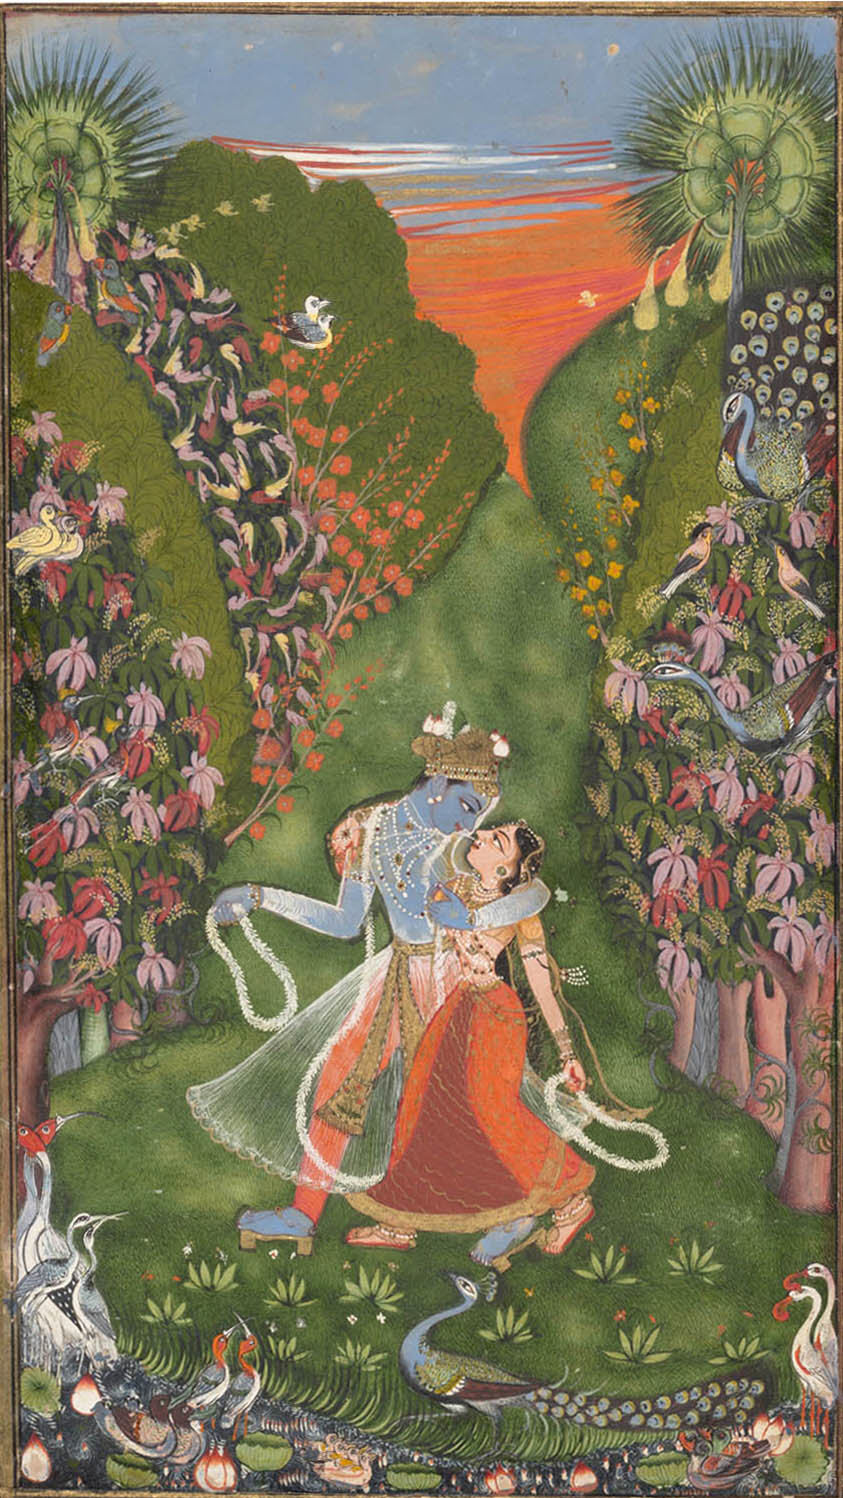 Krishna and Radha gaze into each other's eyes during a sunset walk - Rajput Painting, Kota, c1720